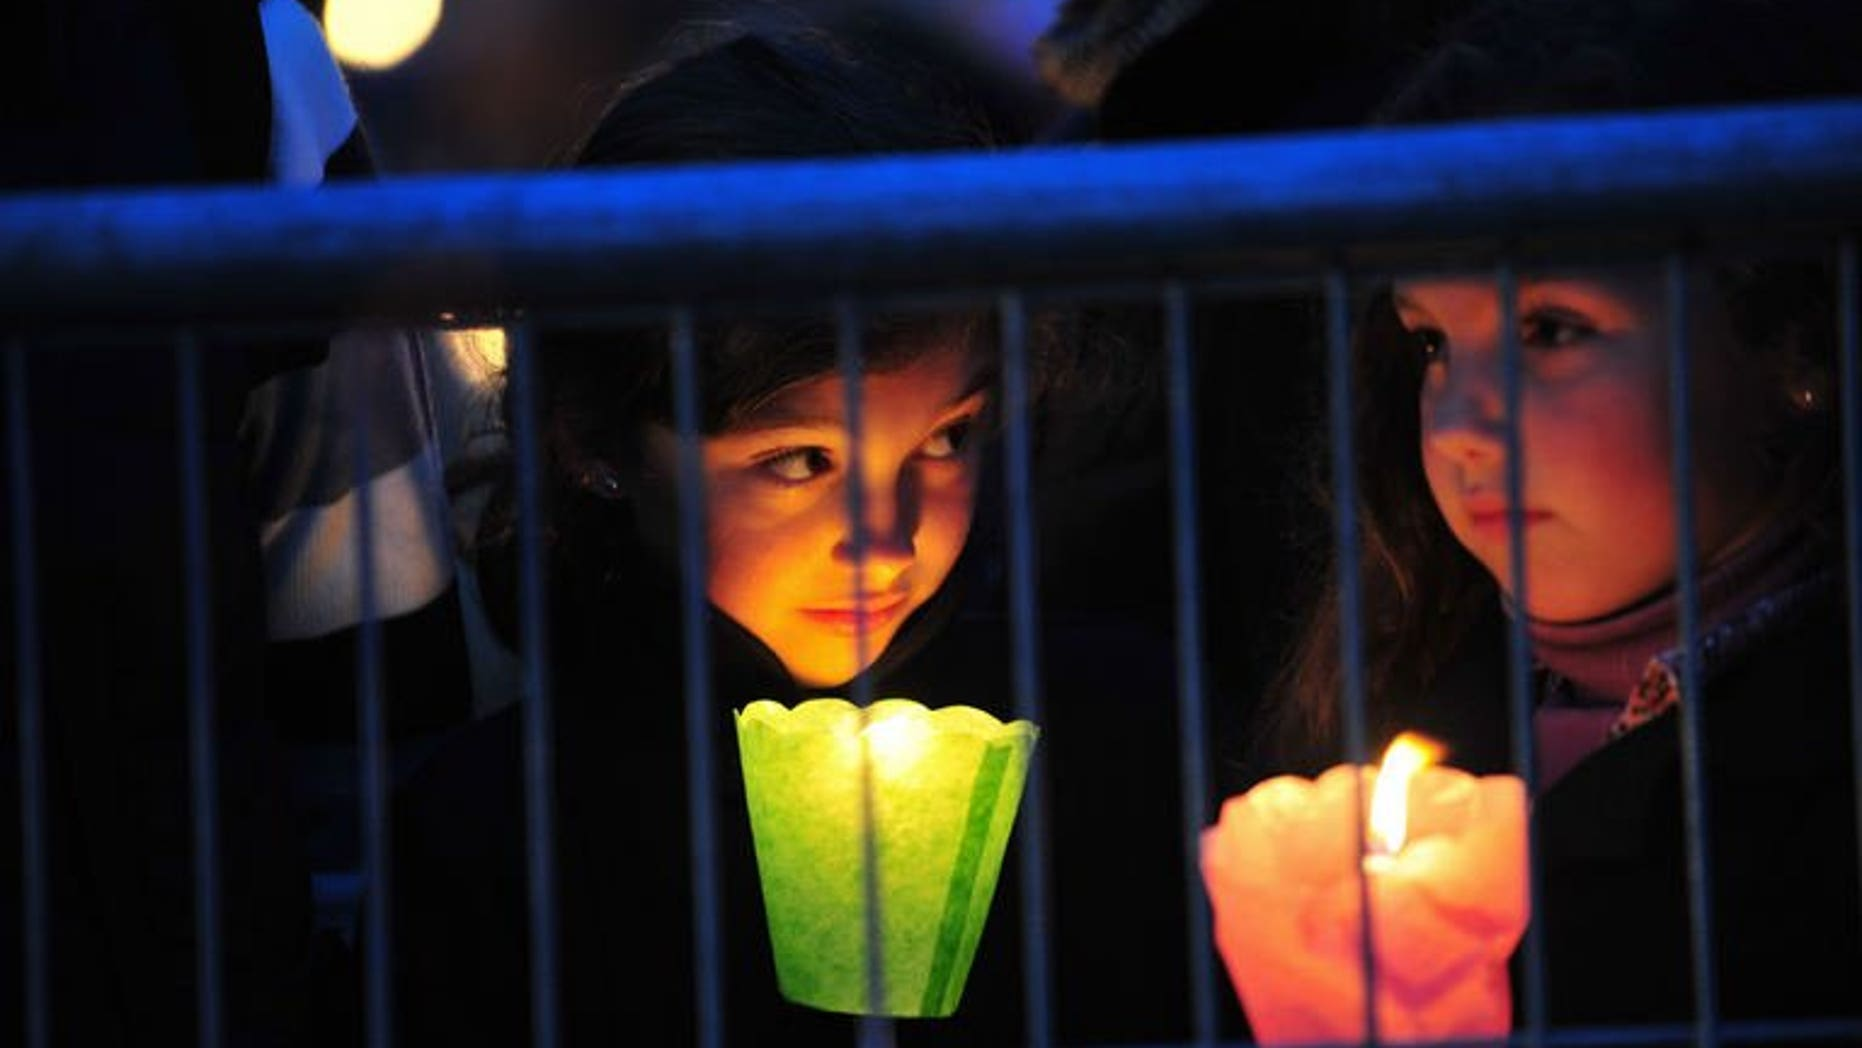 Children hold candles during a prayer vigil at the ancient Circus Maximus Arena in Rome on April 30, 2011, on the eve of the beatification of the late Pope John Paul II. Late popes John Paul II and John XXIII will be made saints of the Roman Catholic Church, the Vatican said on Friday in a widely-awaited announcement, without specifying when the canonisations will occur.